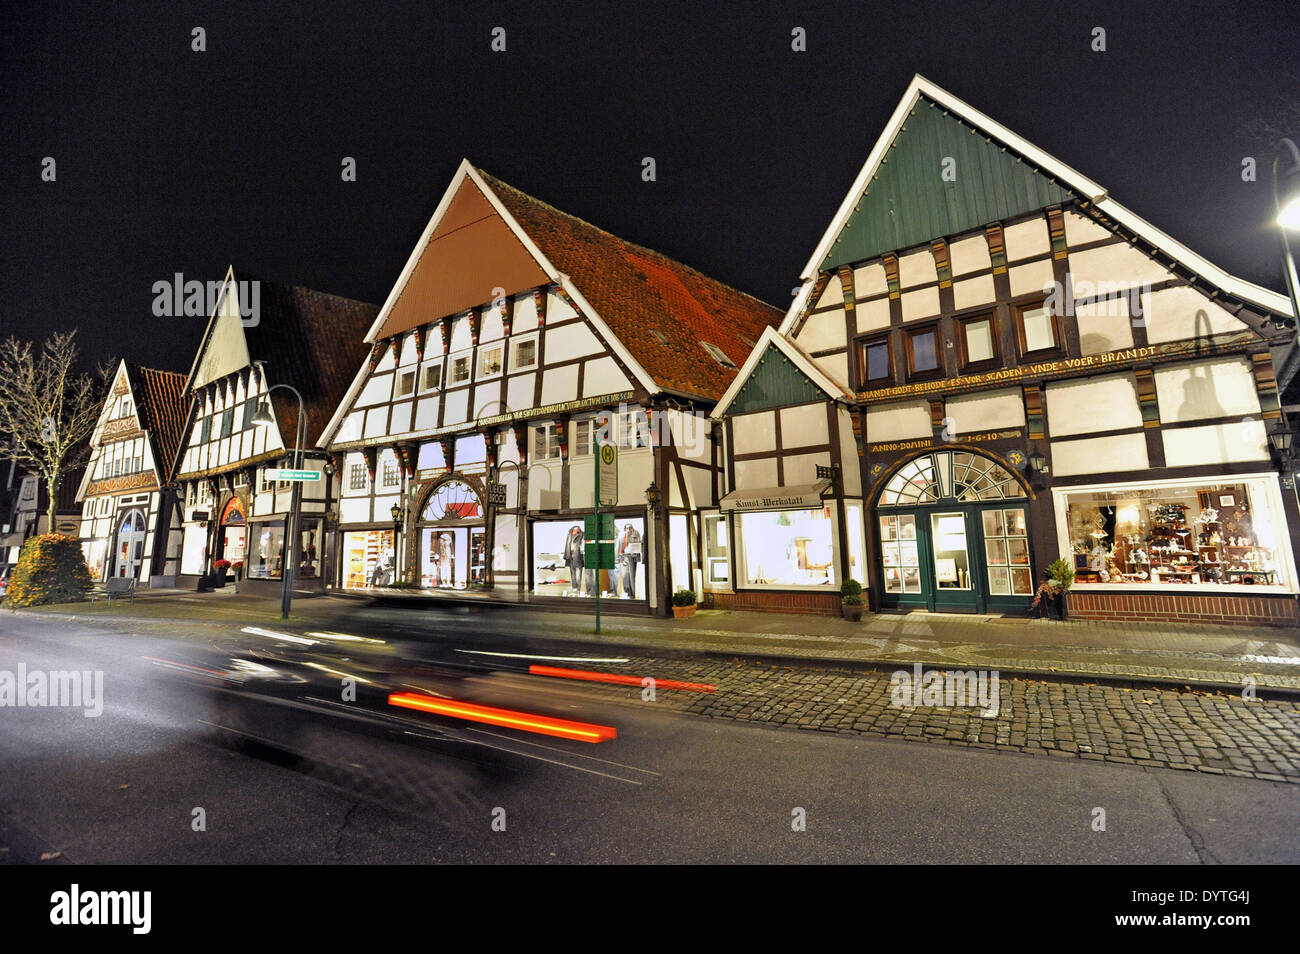 Half-timbered houses - Stock Image